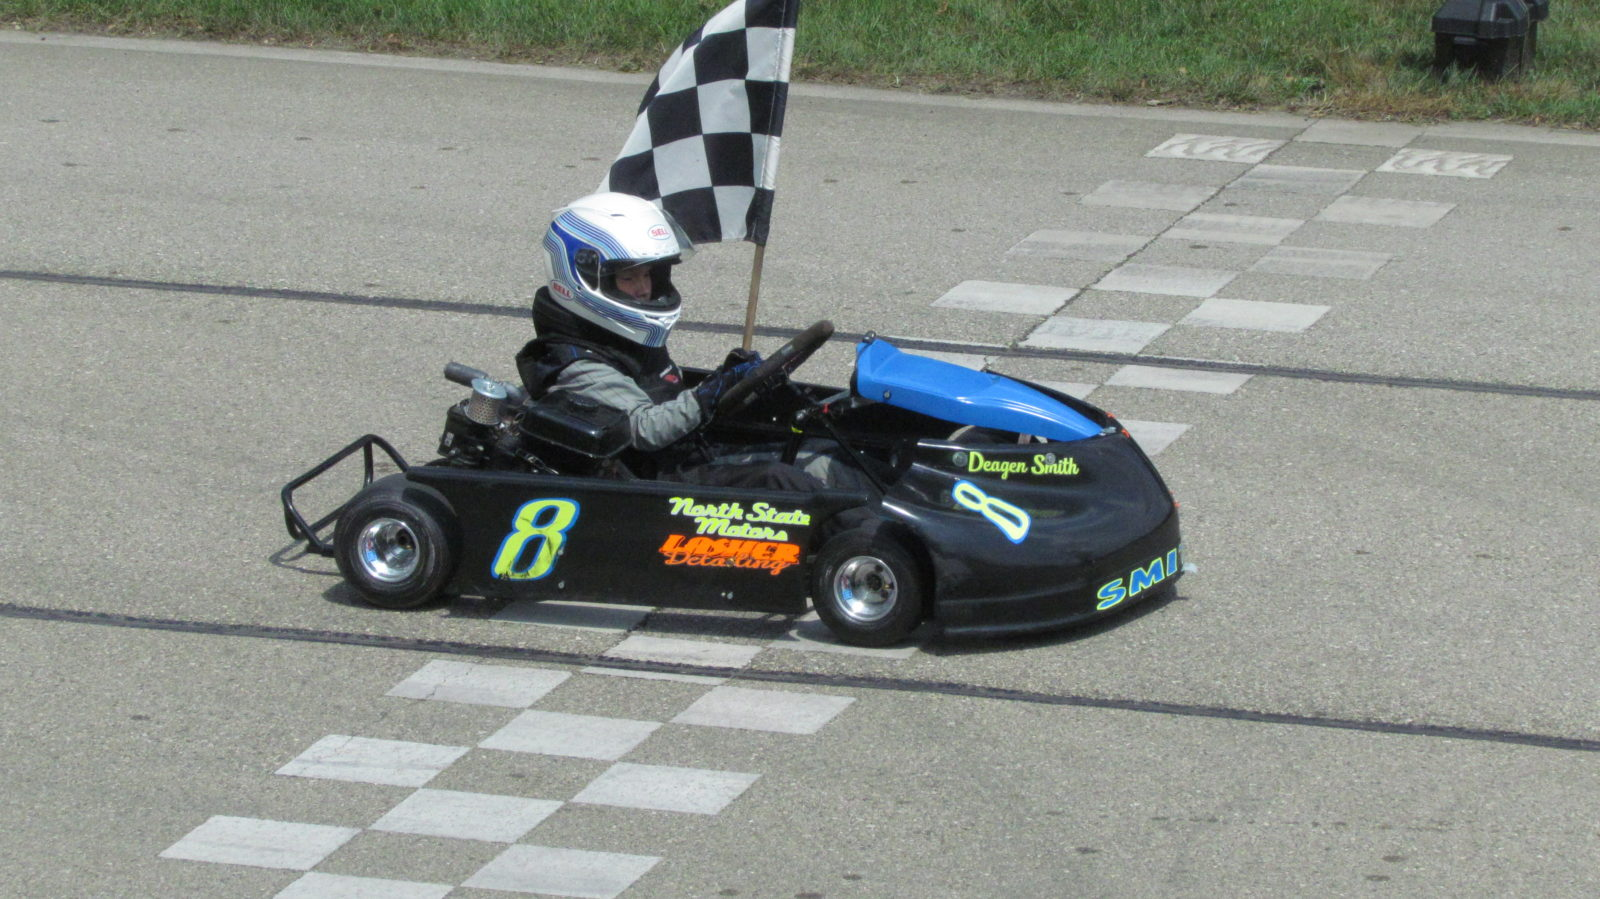 Deegan Smith in victory lane